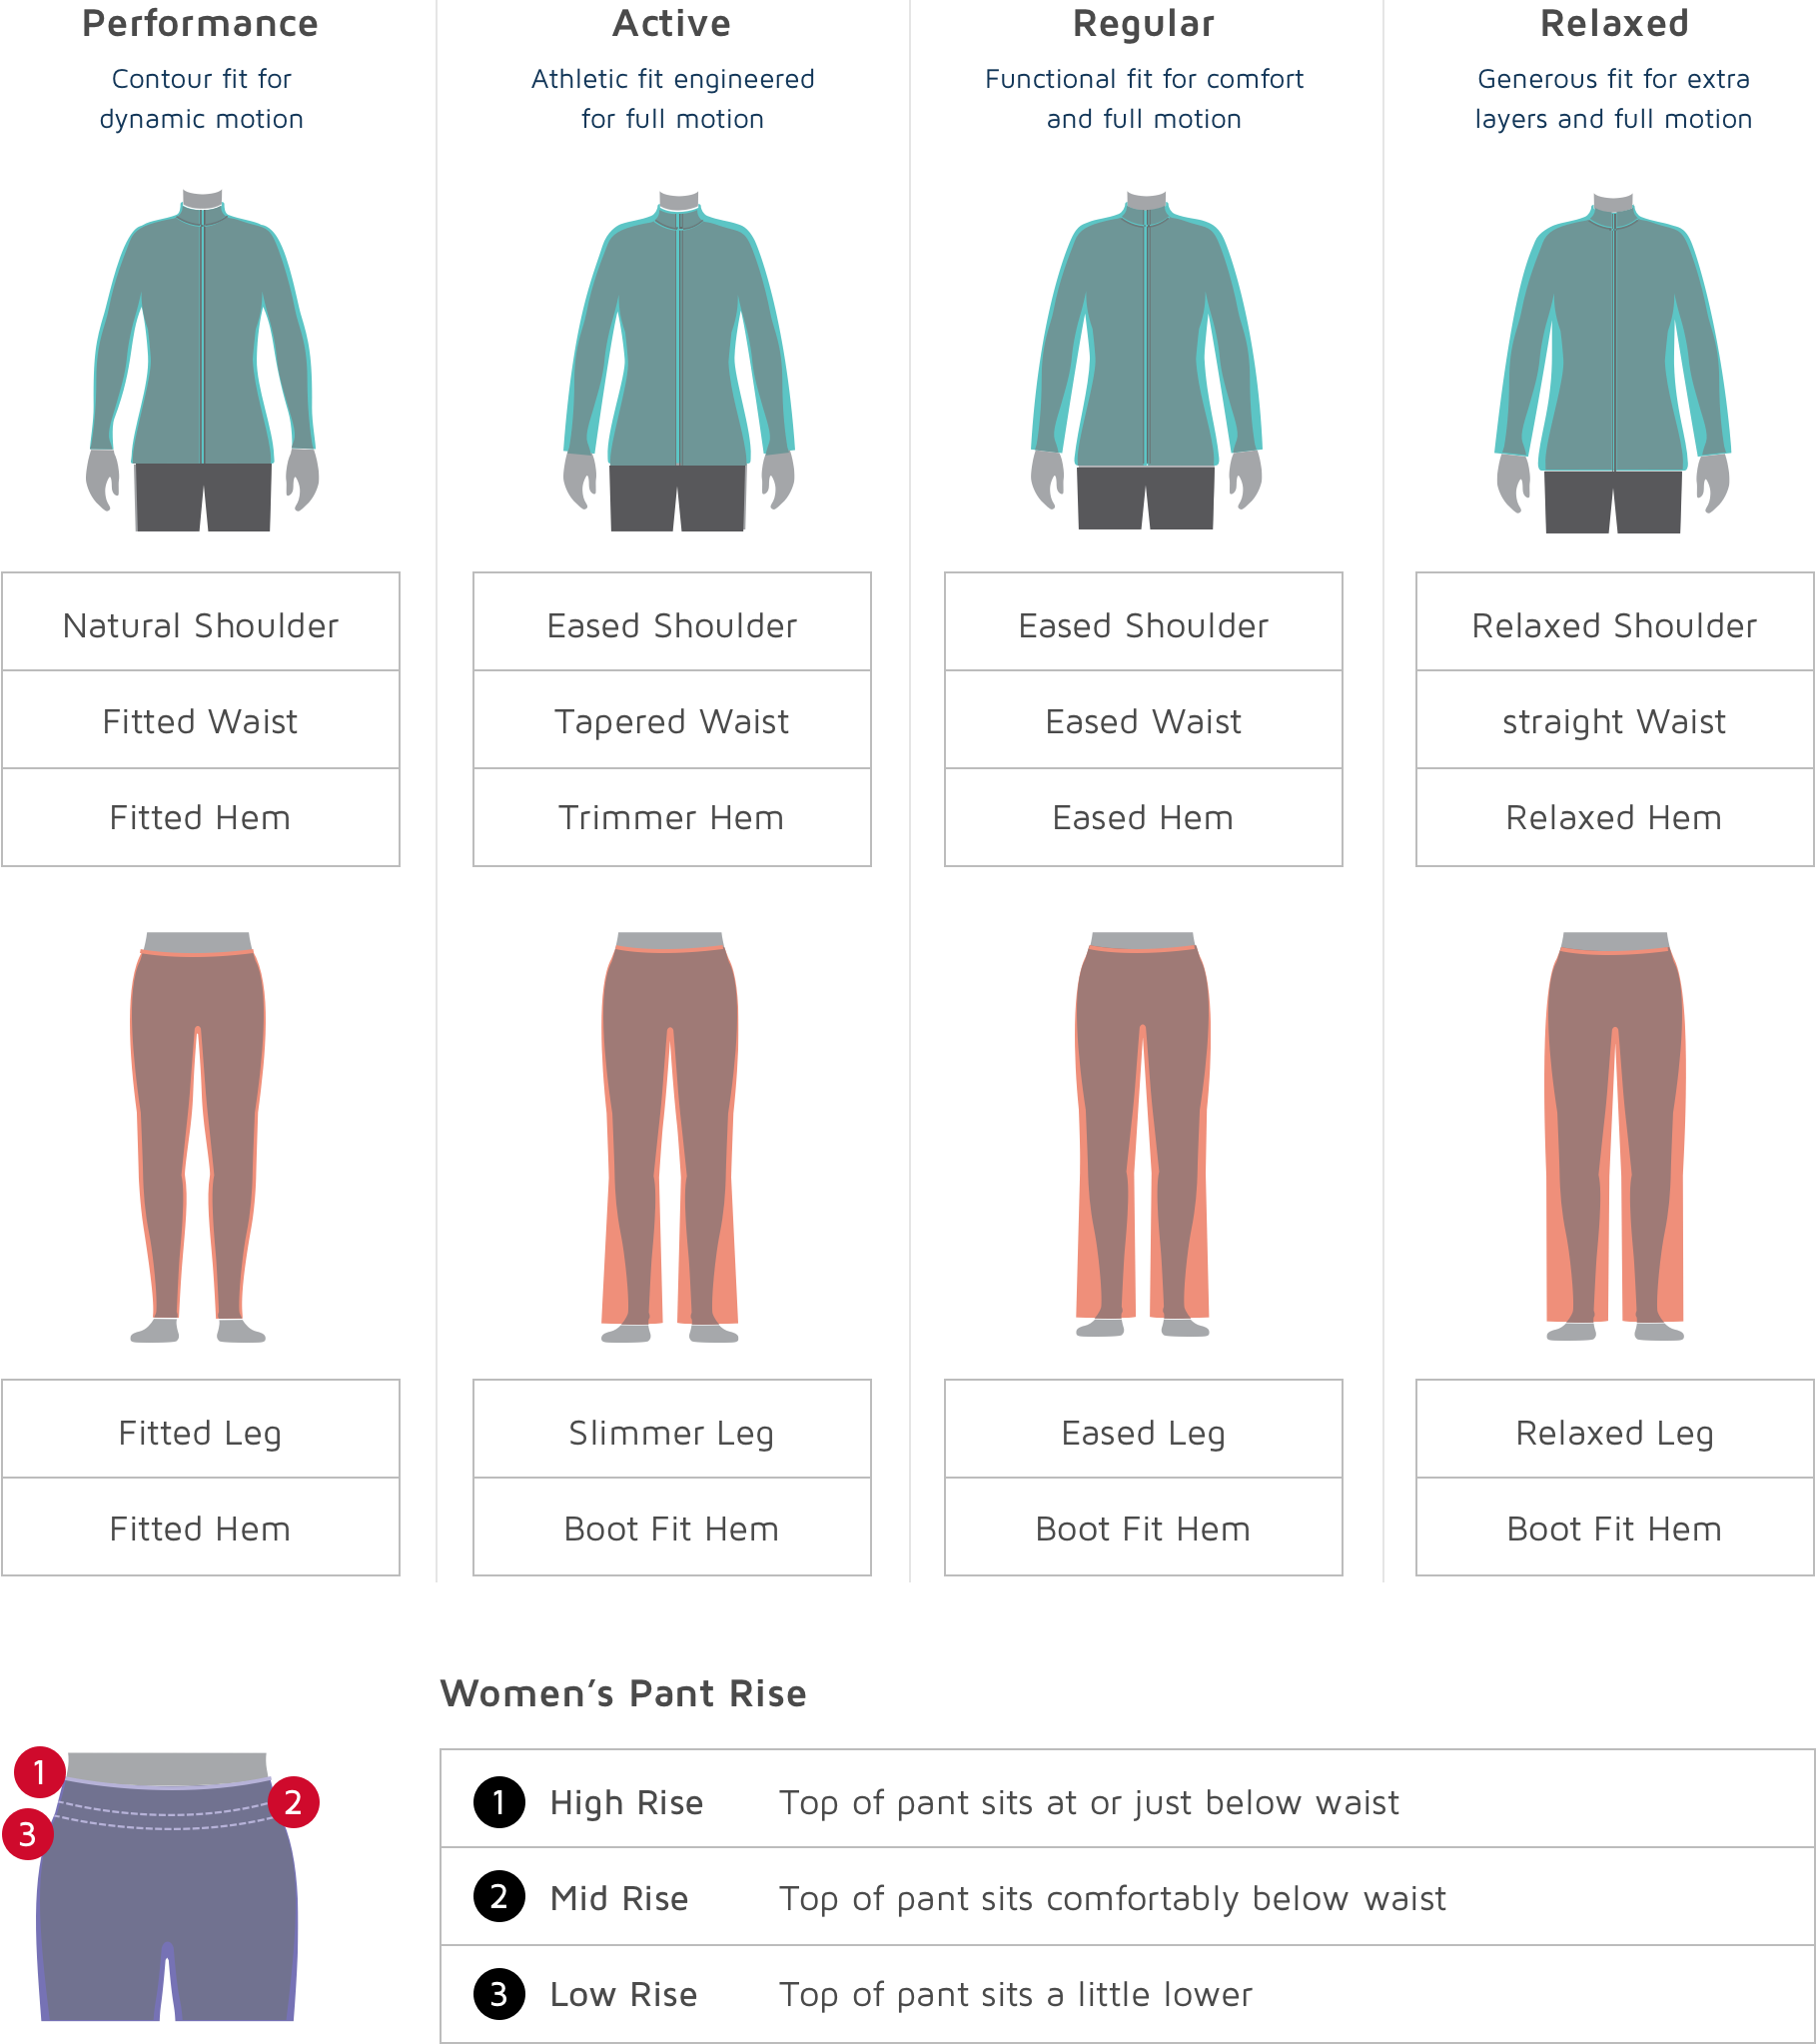 Women's Fit Guide